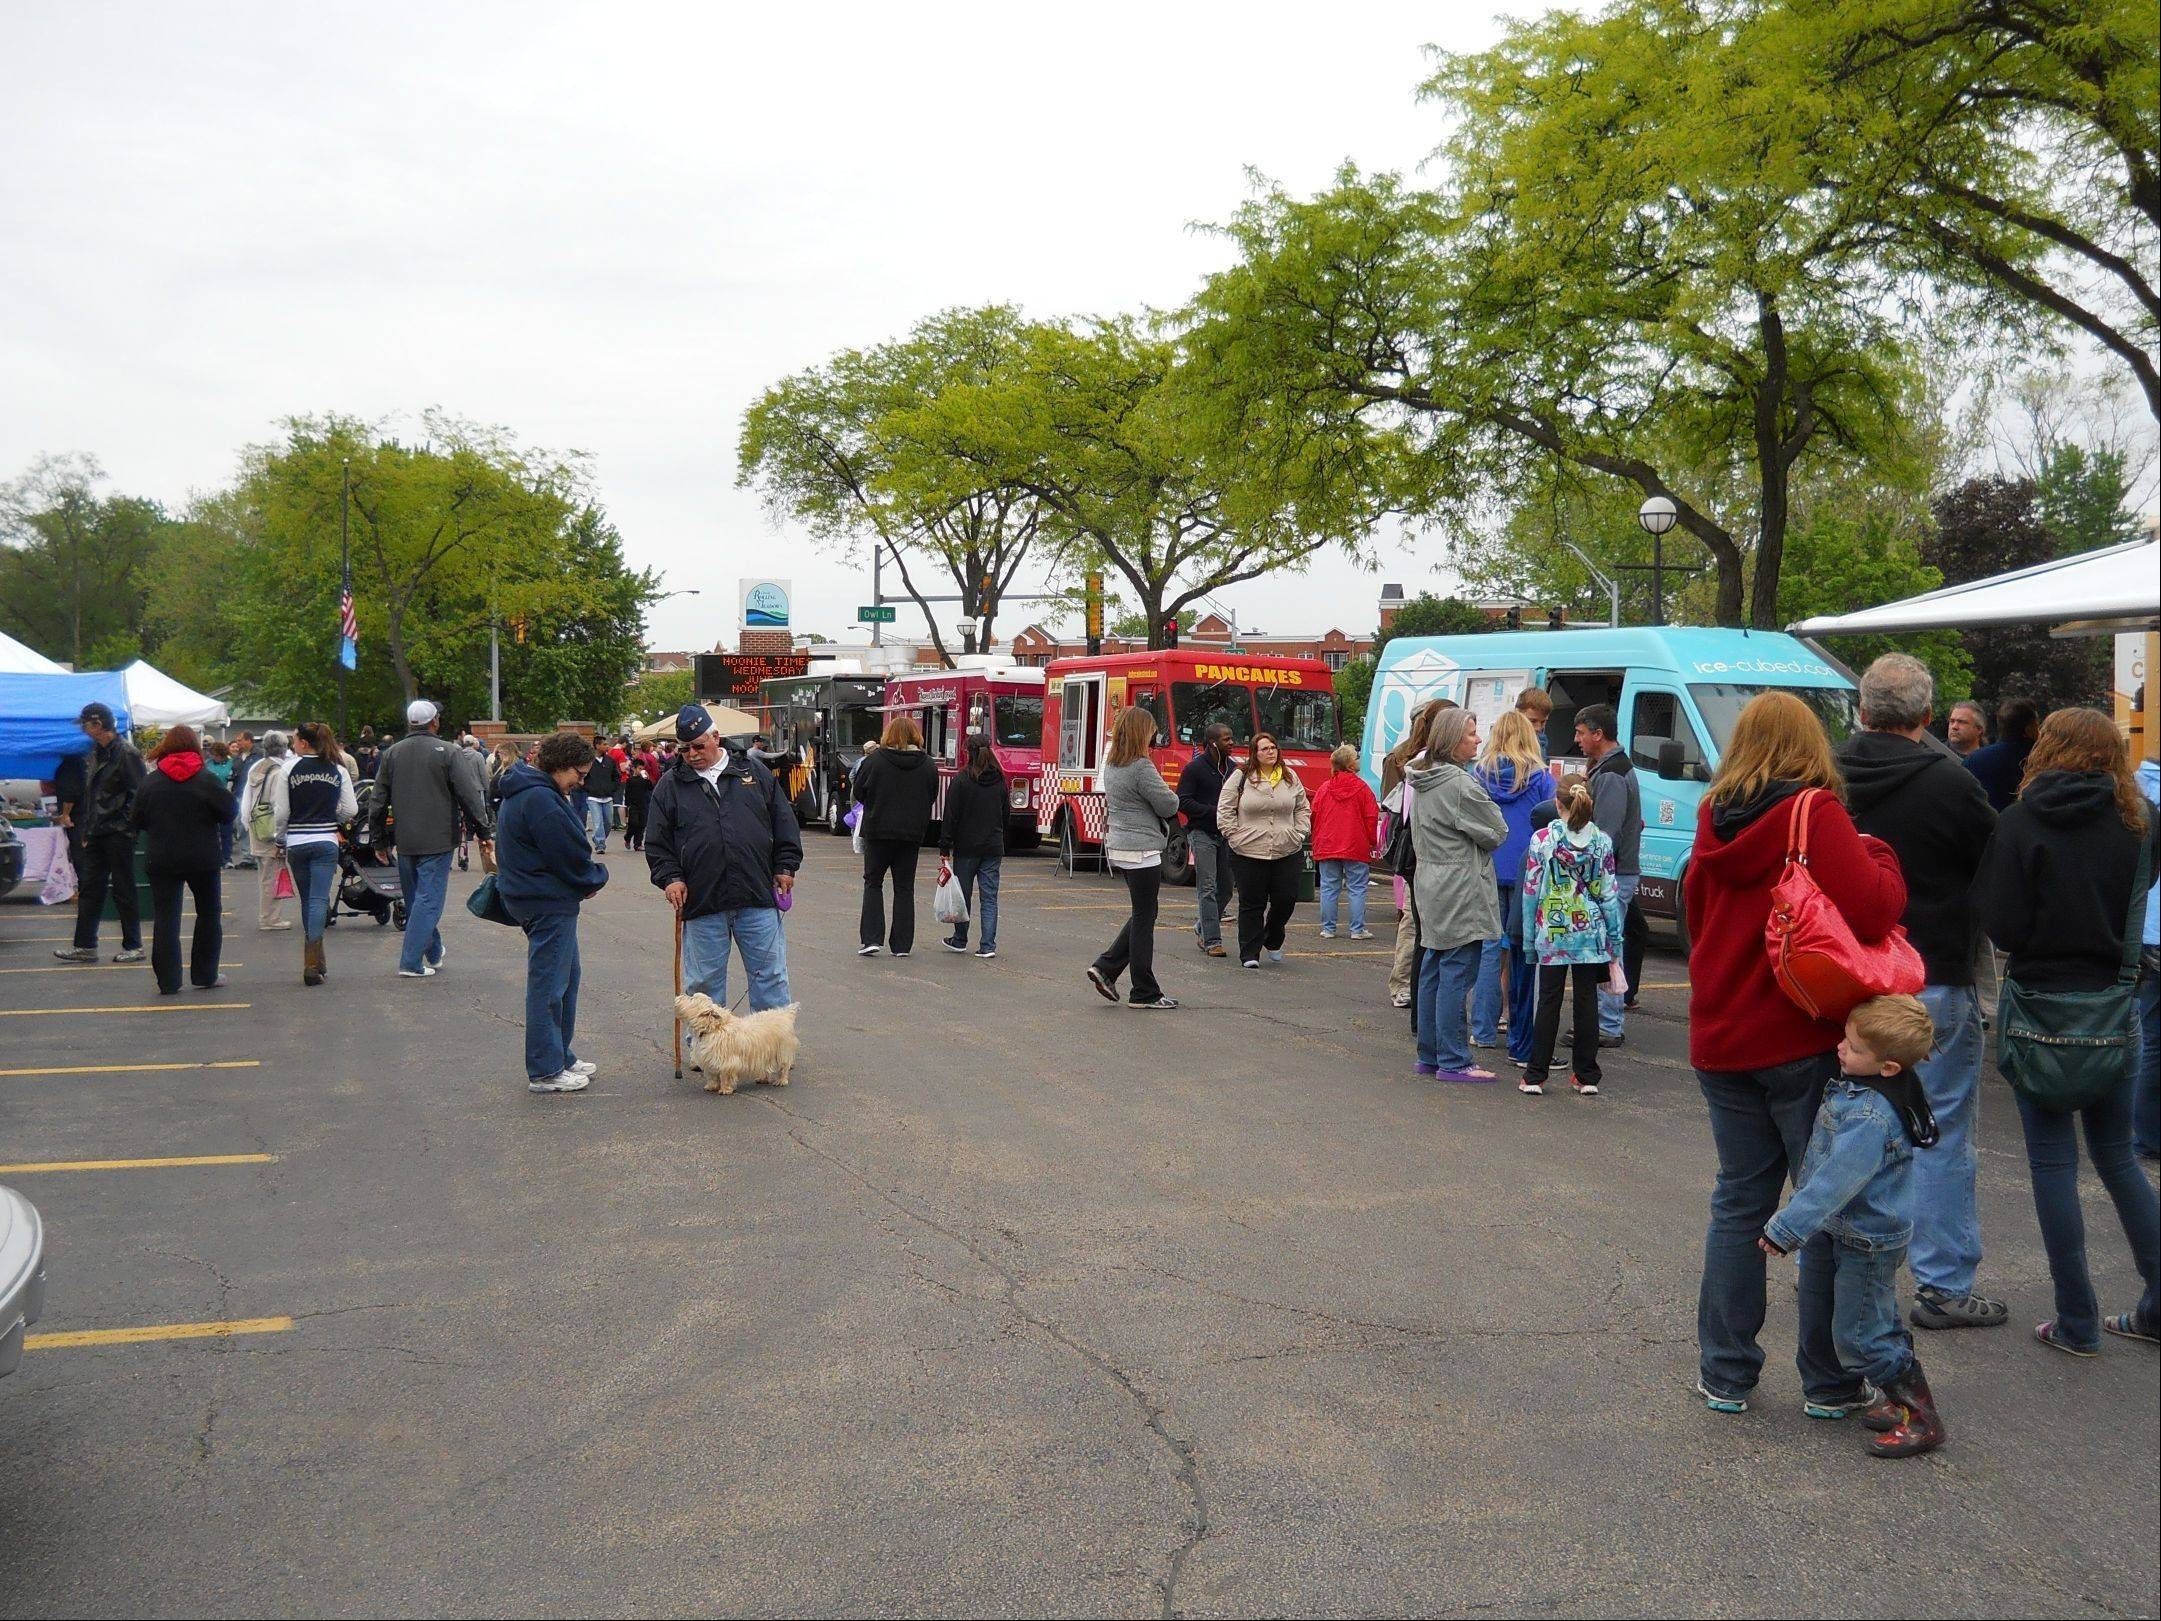 "Rolling Meadows ""Farmers & Food Trucks"" will return for a second season next year, with even more vendors expected to take part, city officials recently announced. The market — held the fourth Saturday of each month from May through September, features a mix of produce and craft vendors with food trucks."